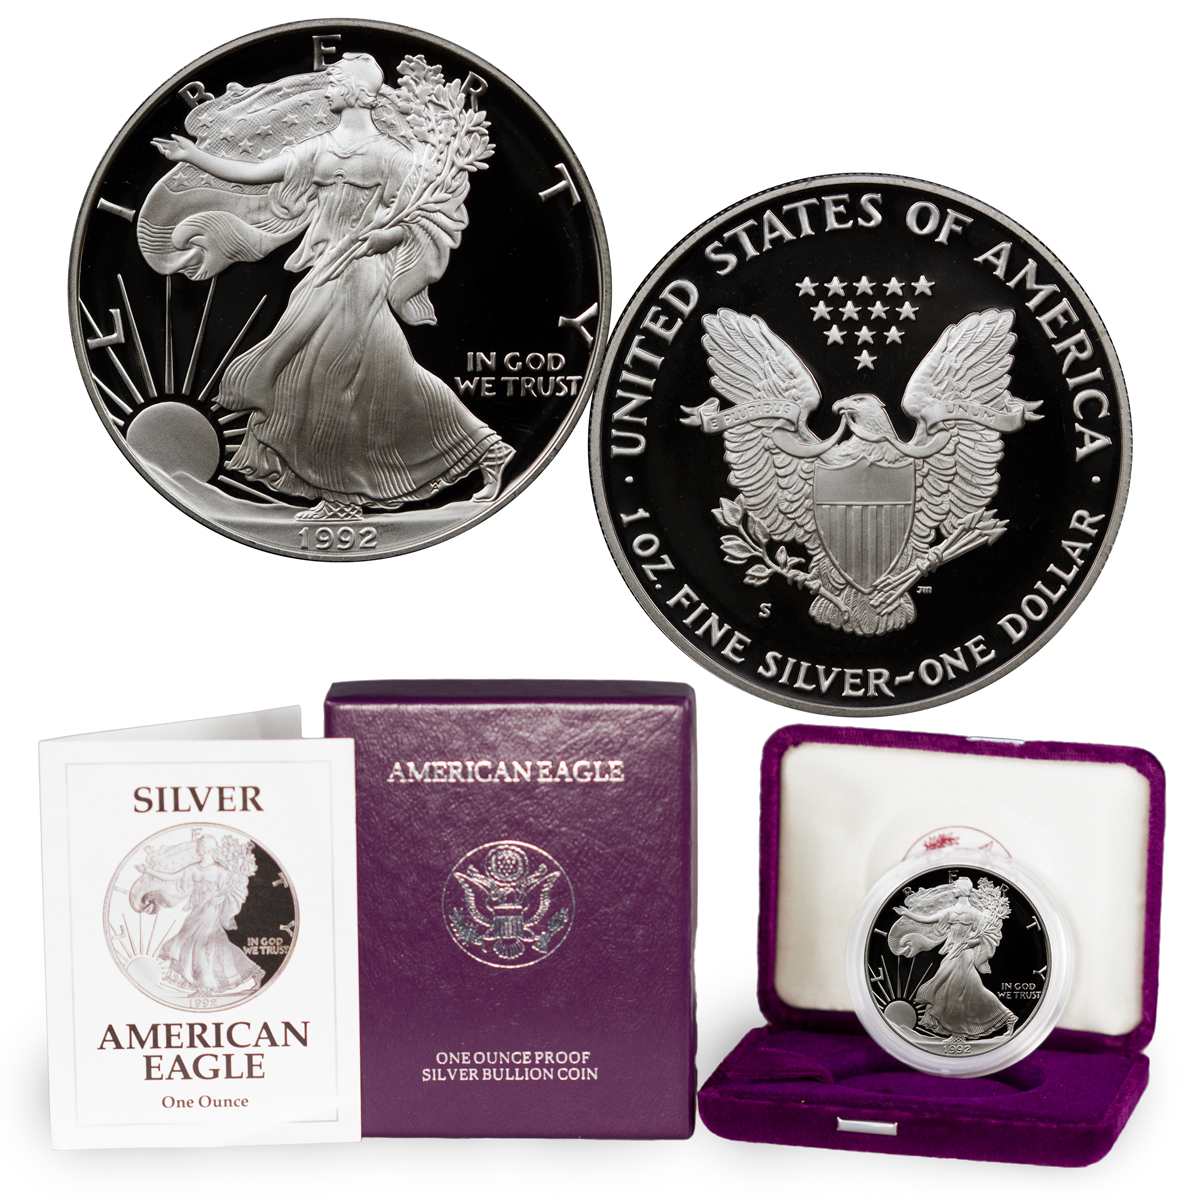 1992-S Proof American Silver Eagle (OGP)